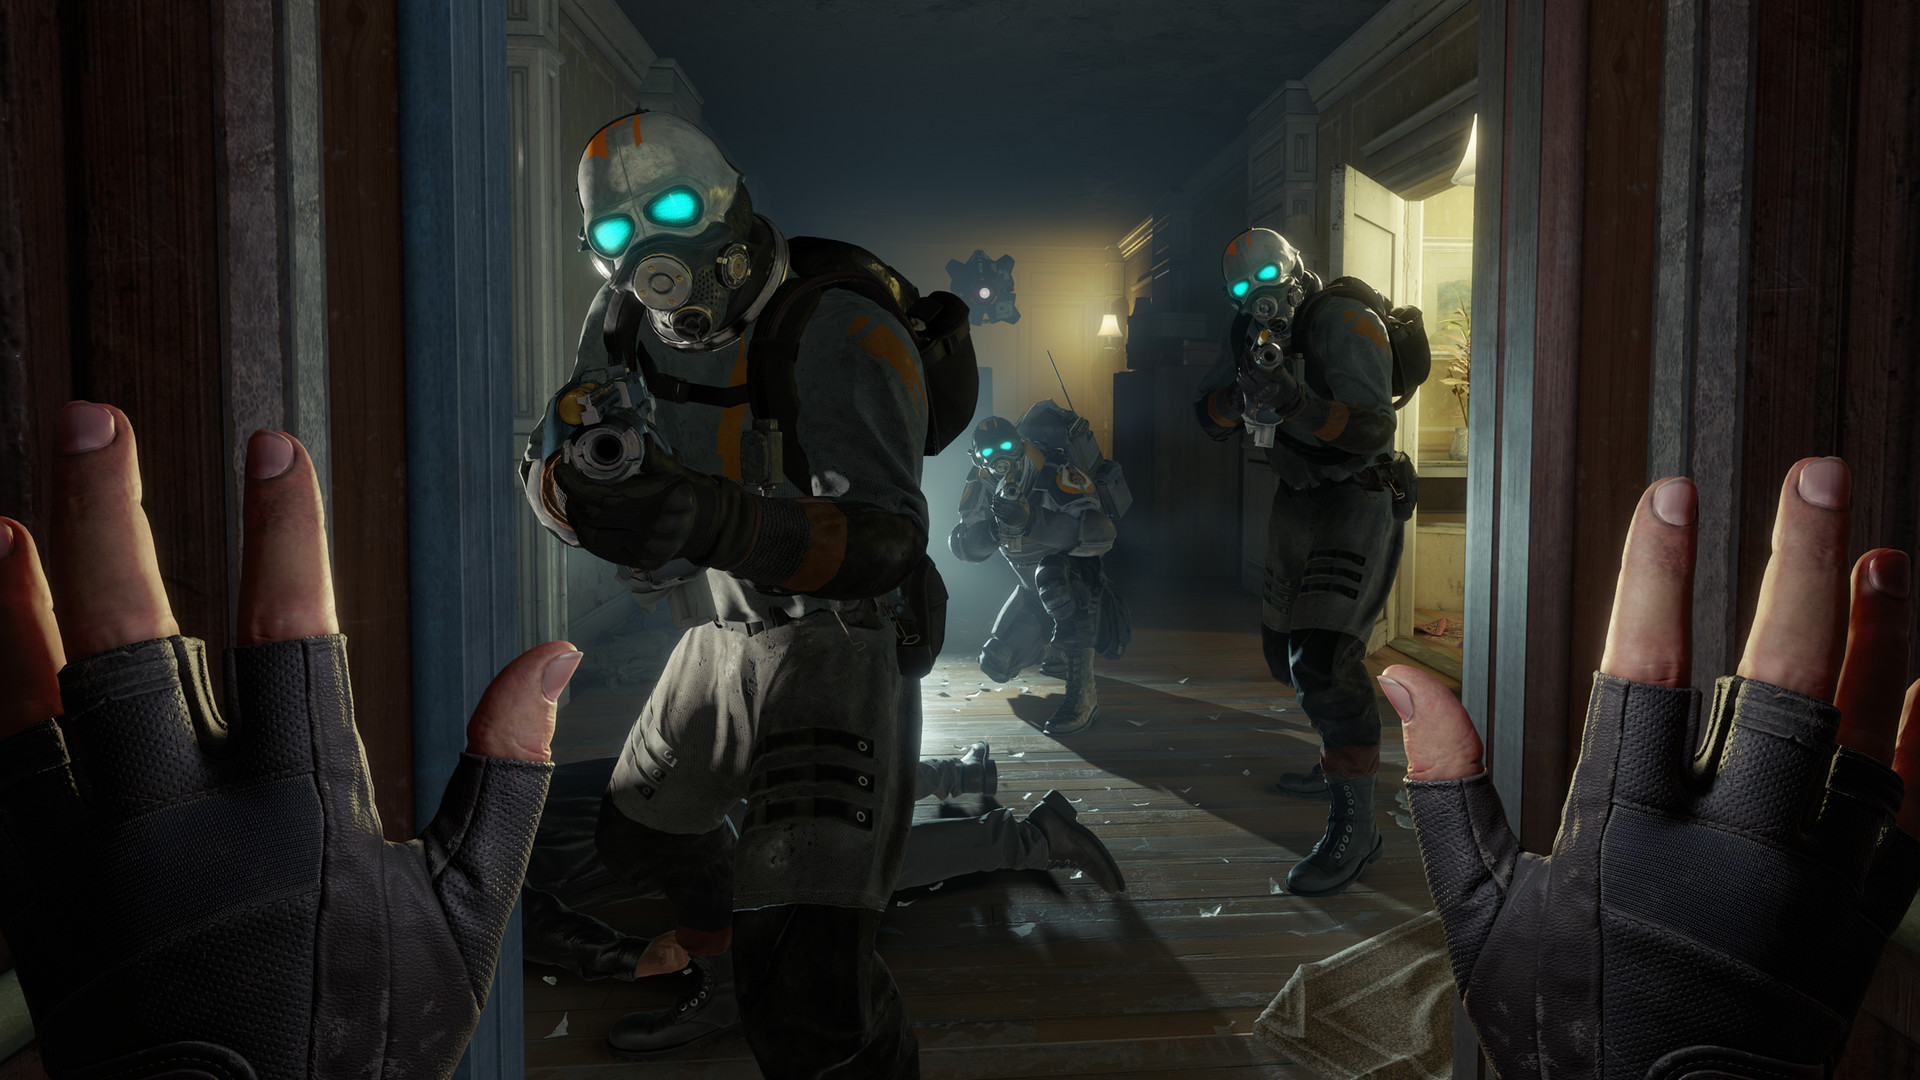 Valve has graced us with what may be the most compelling reason to get a VR headset with Half-Life: Alyx.